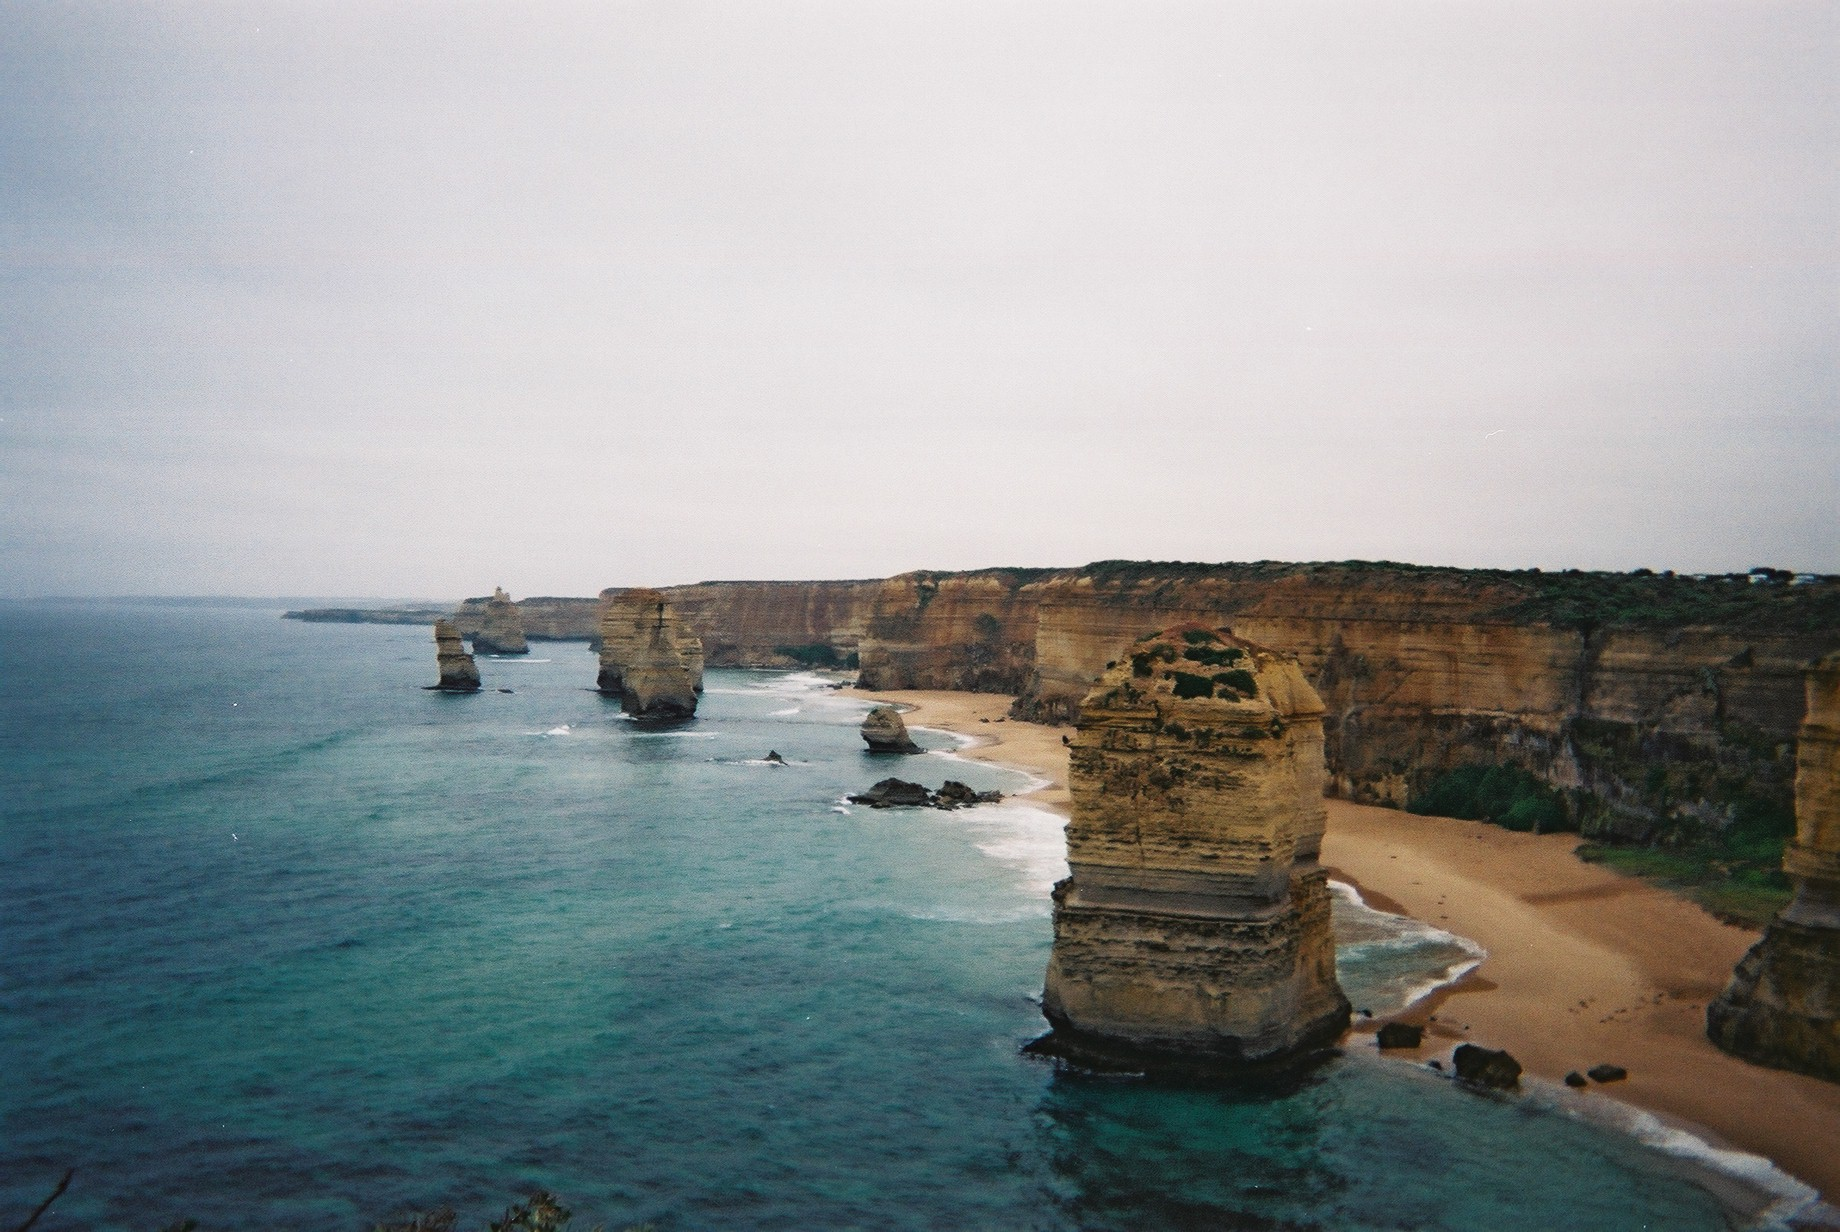 Australia through my disposable camera